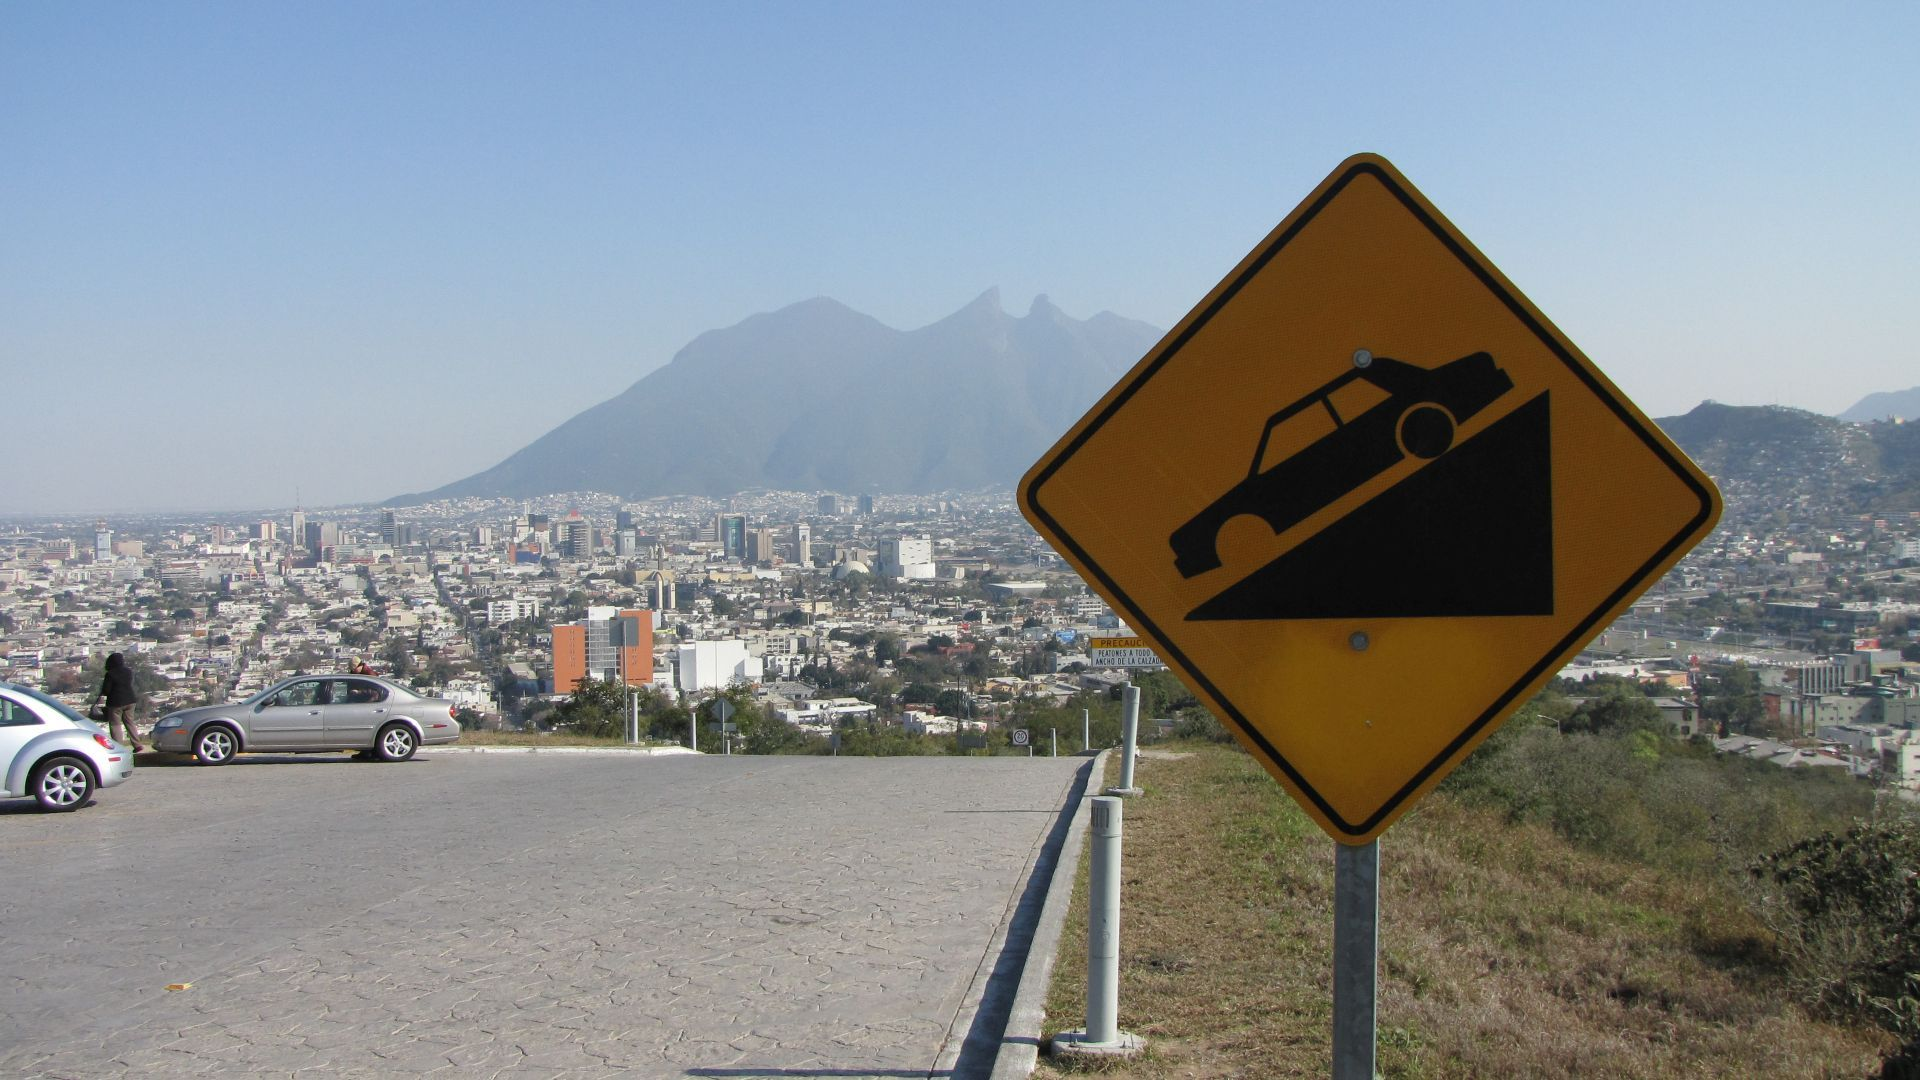 Monterrey, NL, Mexico - Notice the car in the sign ... it has no front wheel! (it hadn't been vandalised it actually looked like it had been made that way!)